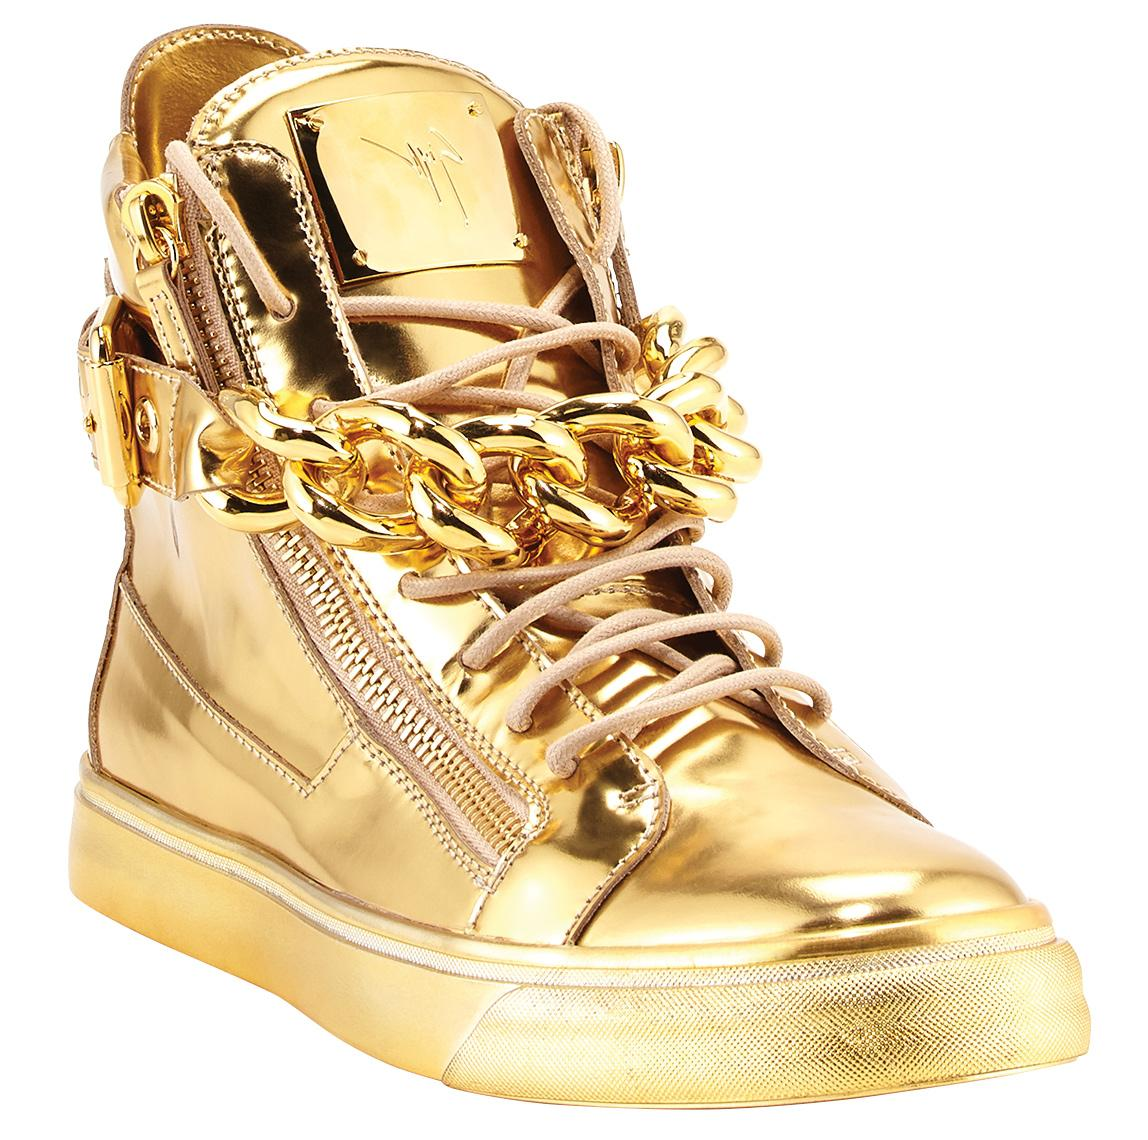 Giuseppe Zanotti men's metallic chain & zipper high-top